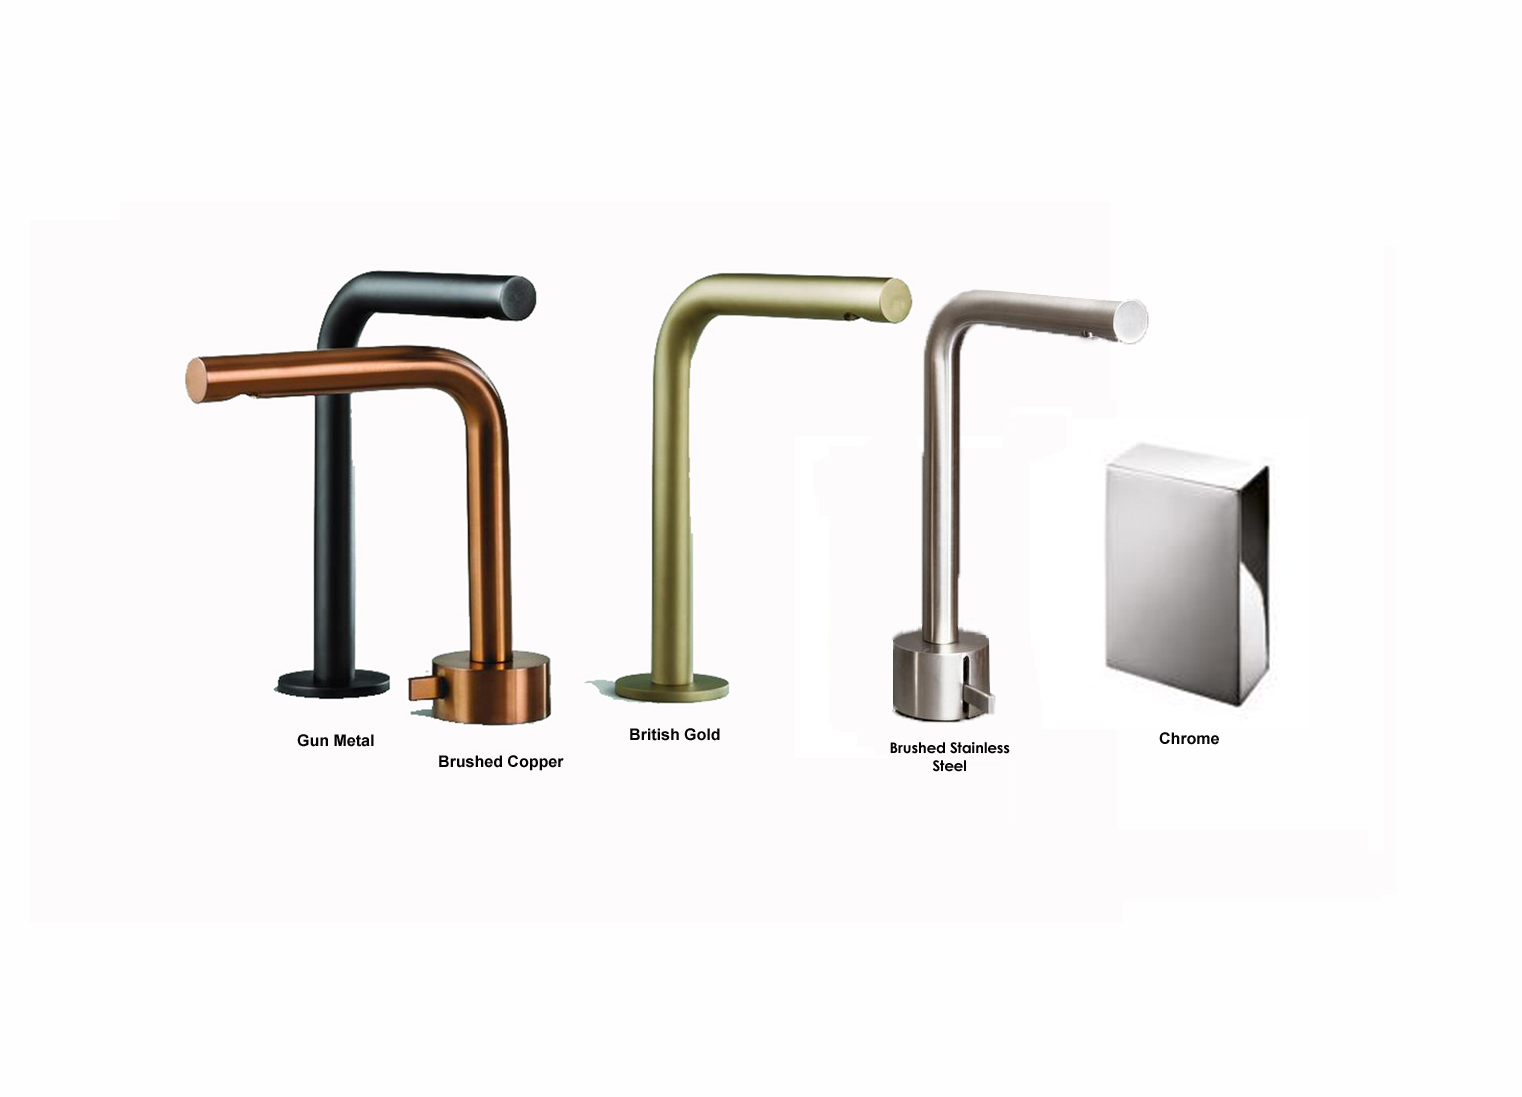 milano contemporary wall collections faucet milanowallmountfaucet image fantini mount faucets hydrology